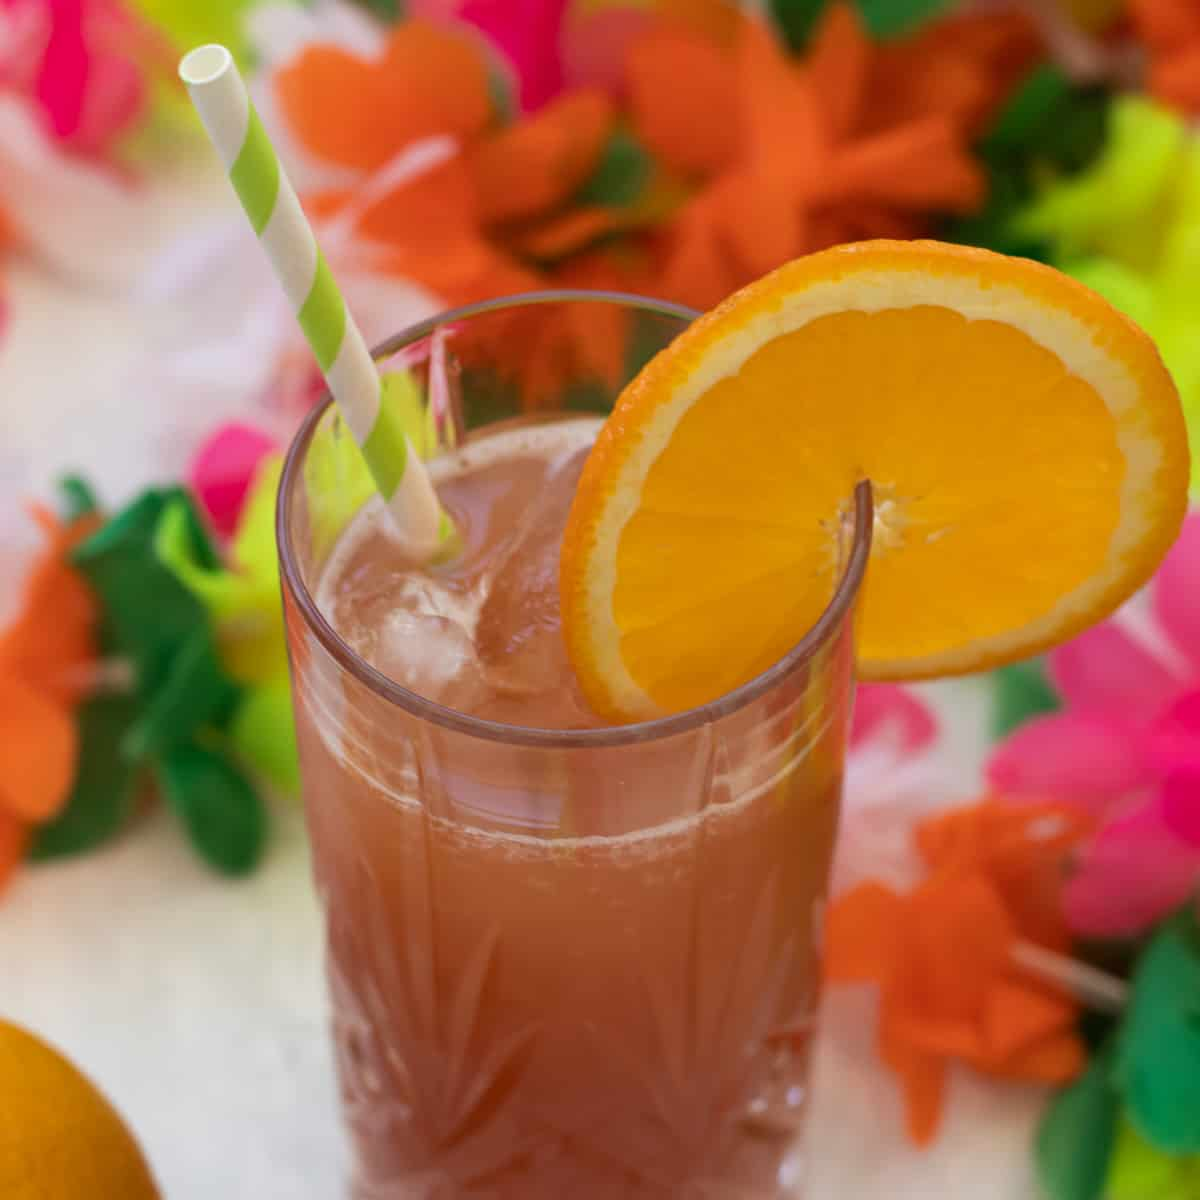 sex on the beach mocktail decorated with an orange slice and a straw